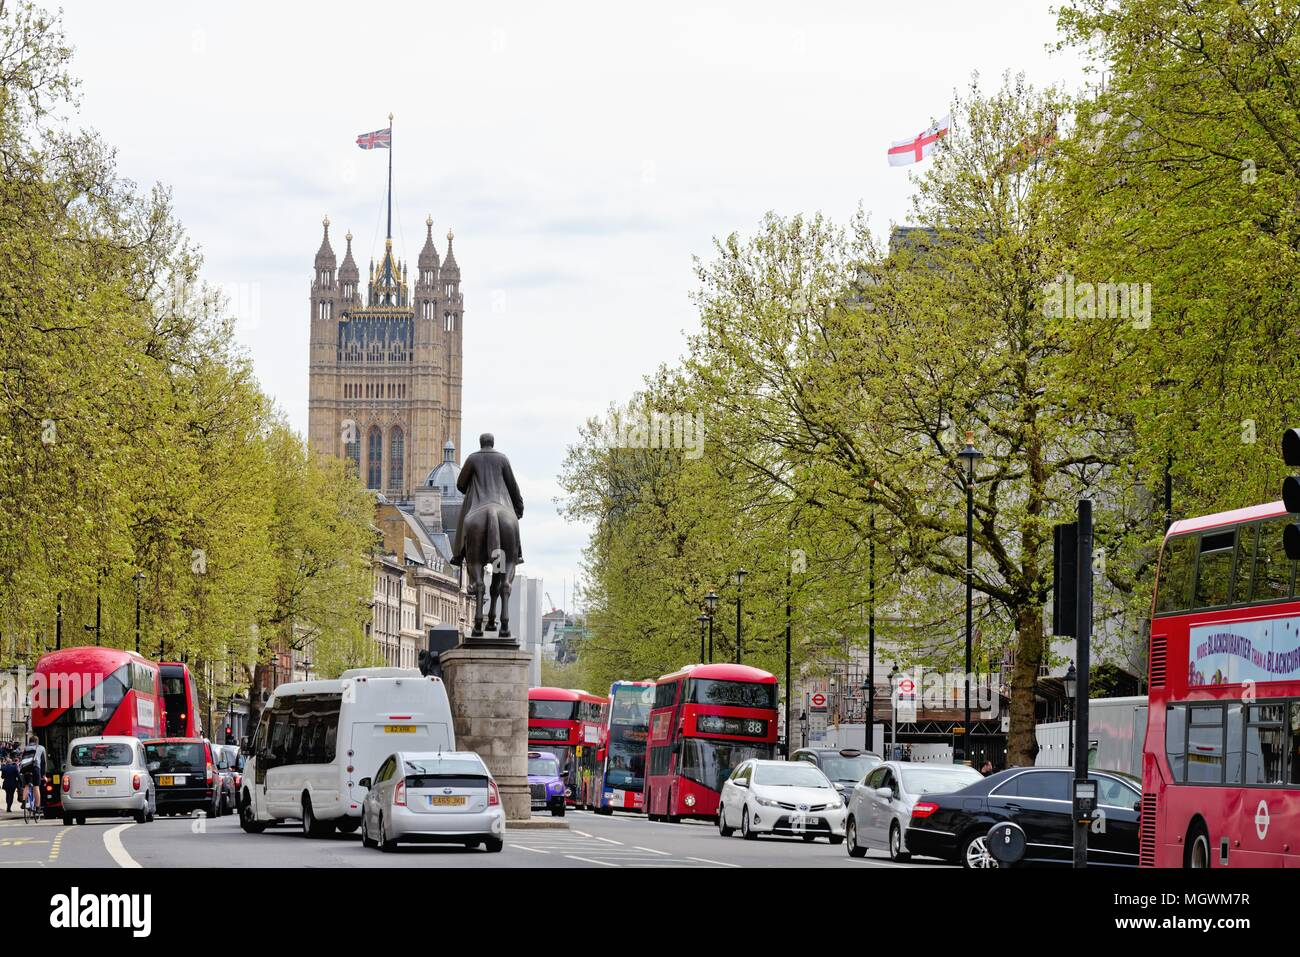 View of Whitehall looking towards the Houses of Parliament Westminster, central London England UK Stock Photo